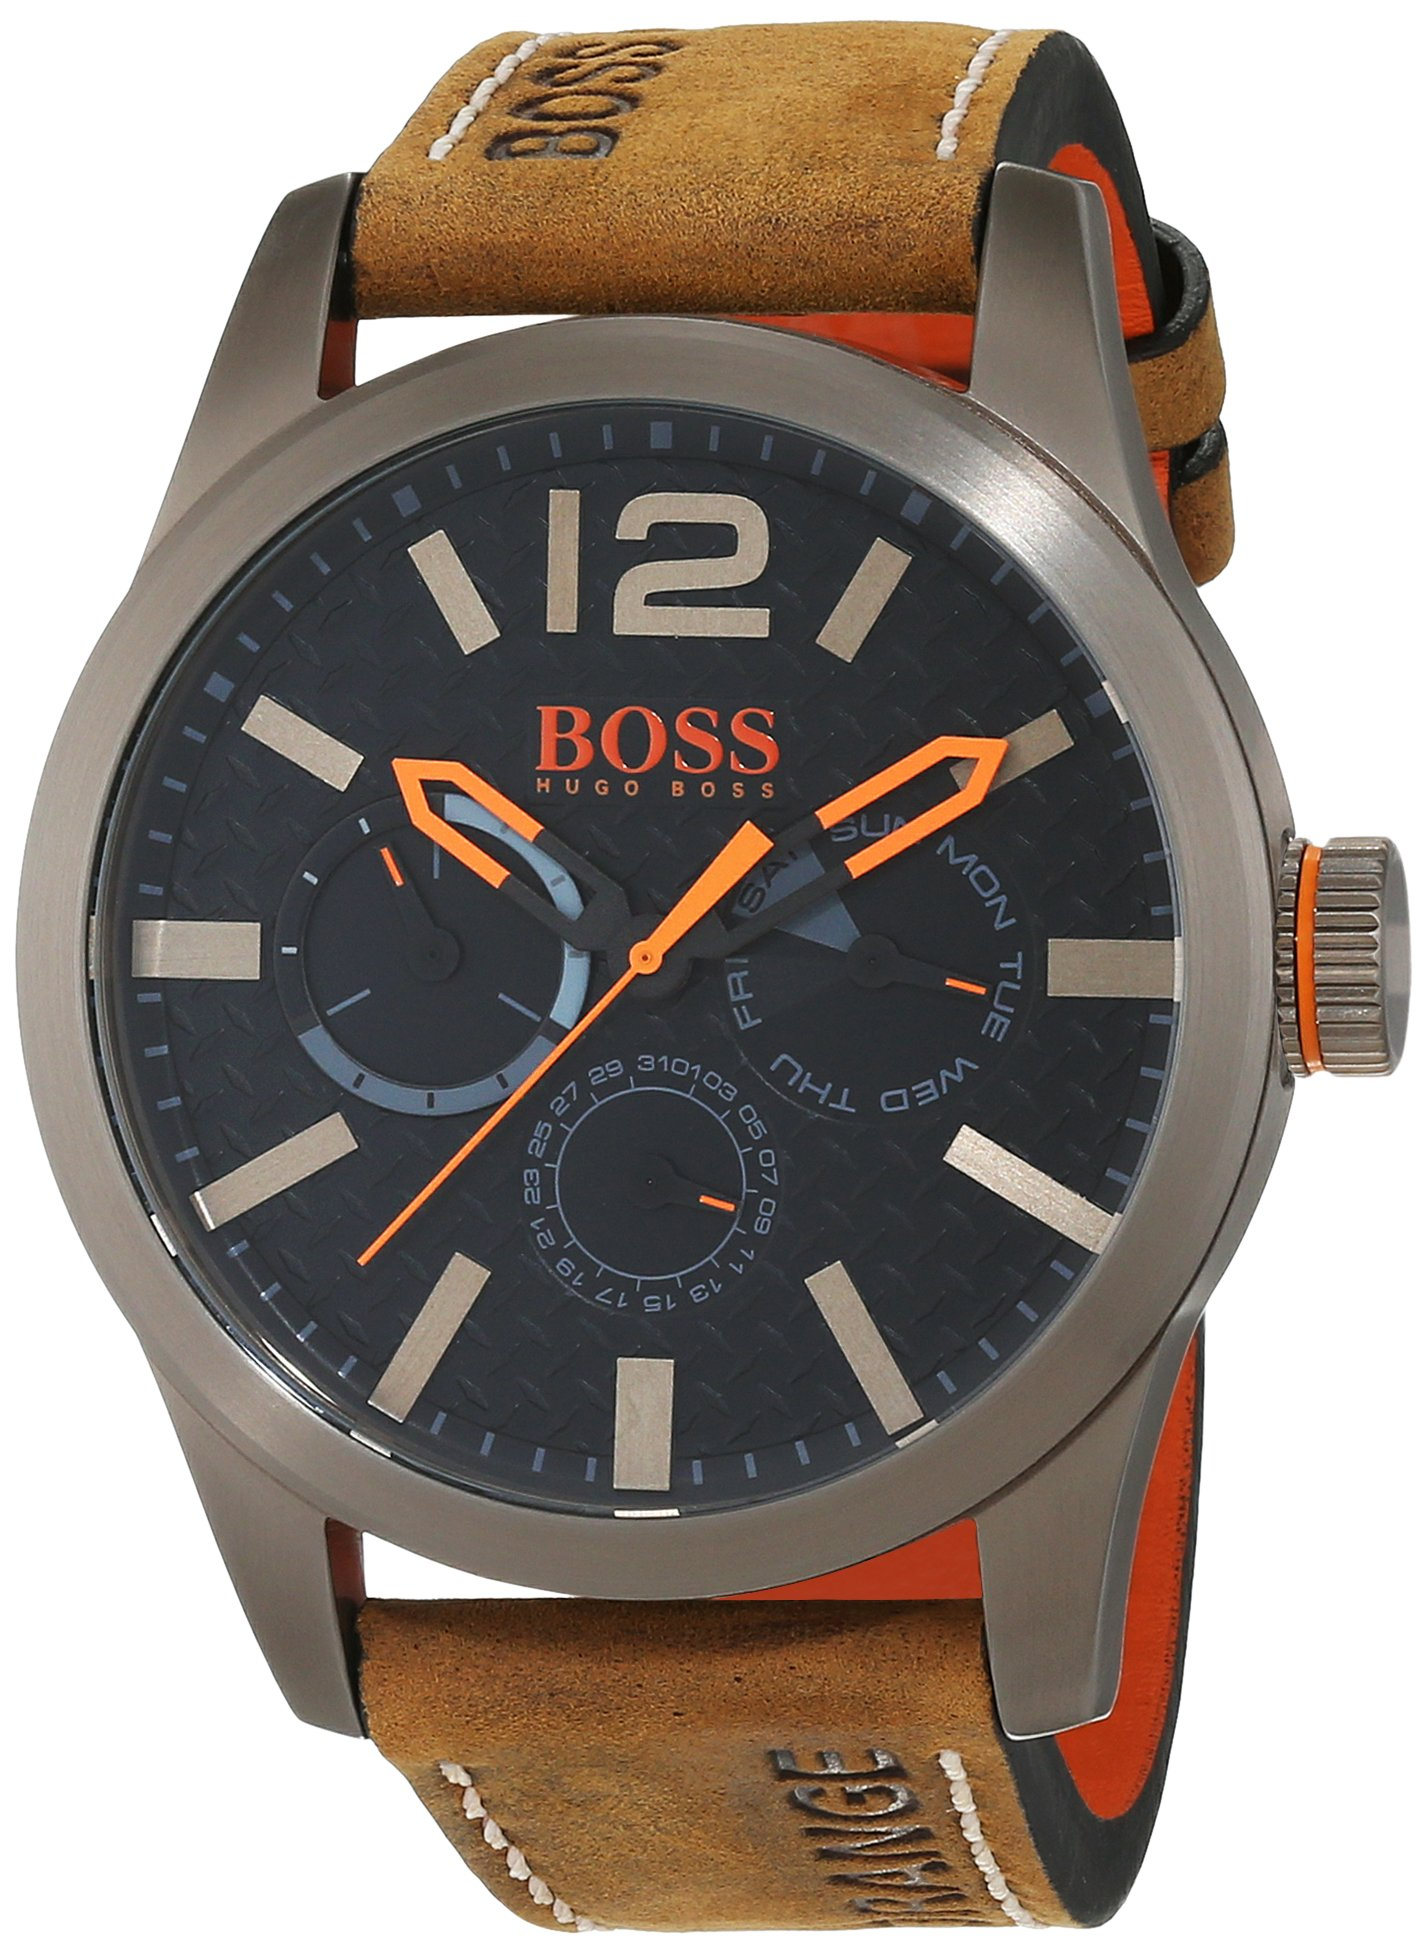 Hugo Boss Orange Paris Herren-Armbanduhr Quartz mit braunem Leder Armband 1513240 6